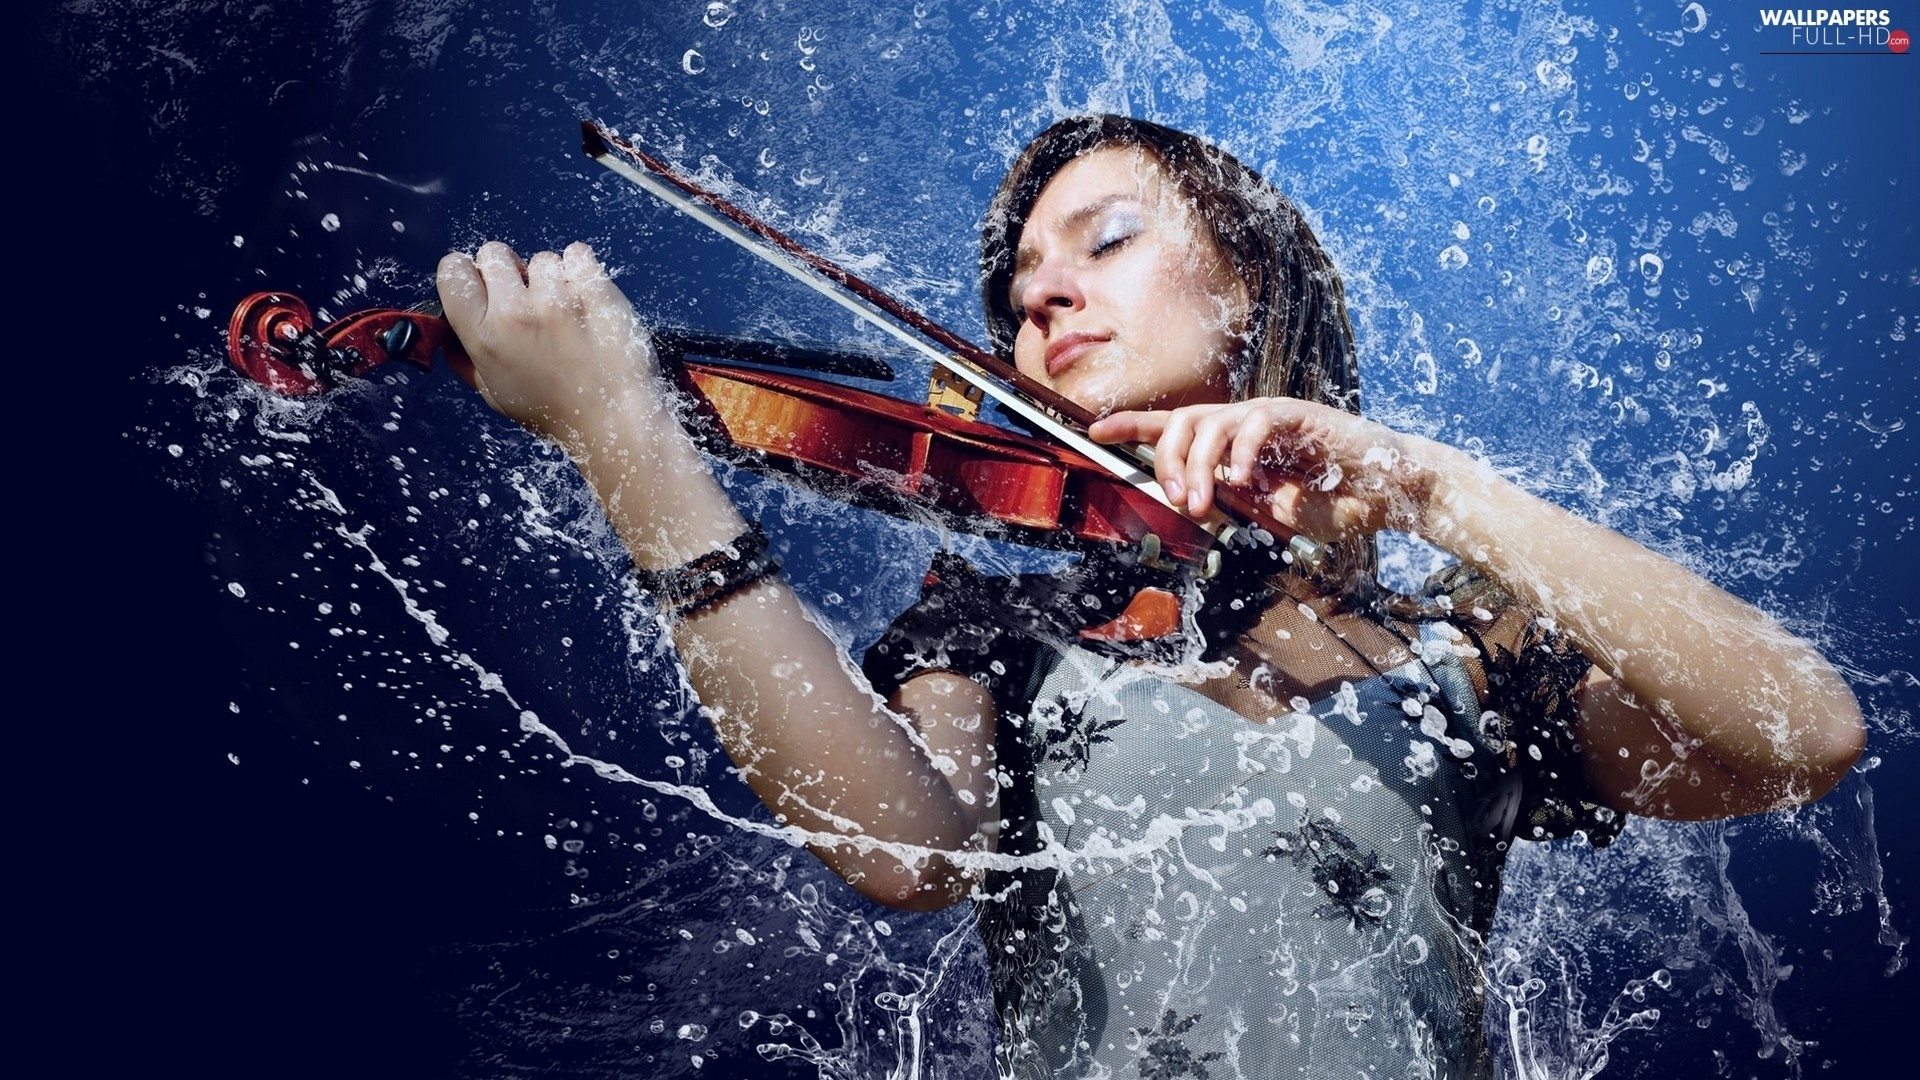 Fiddle, water, girl